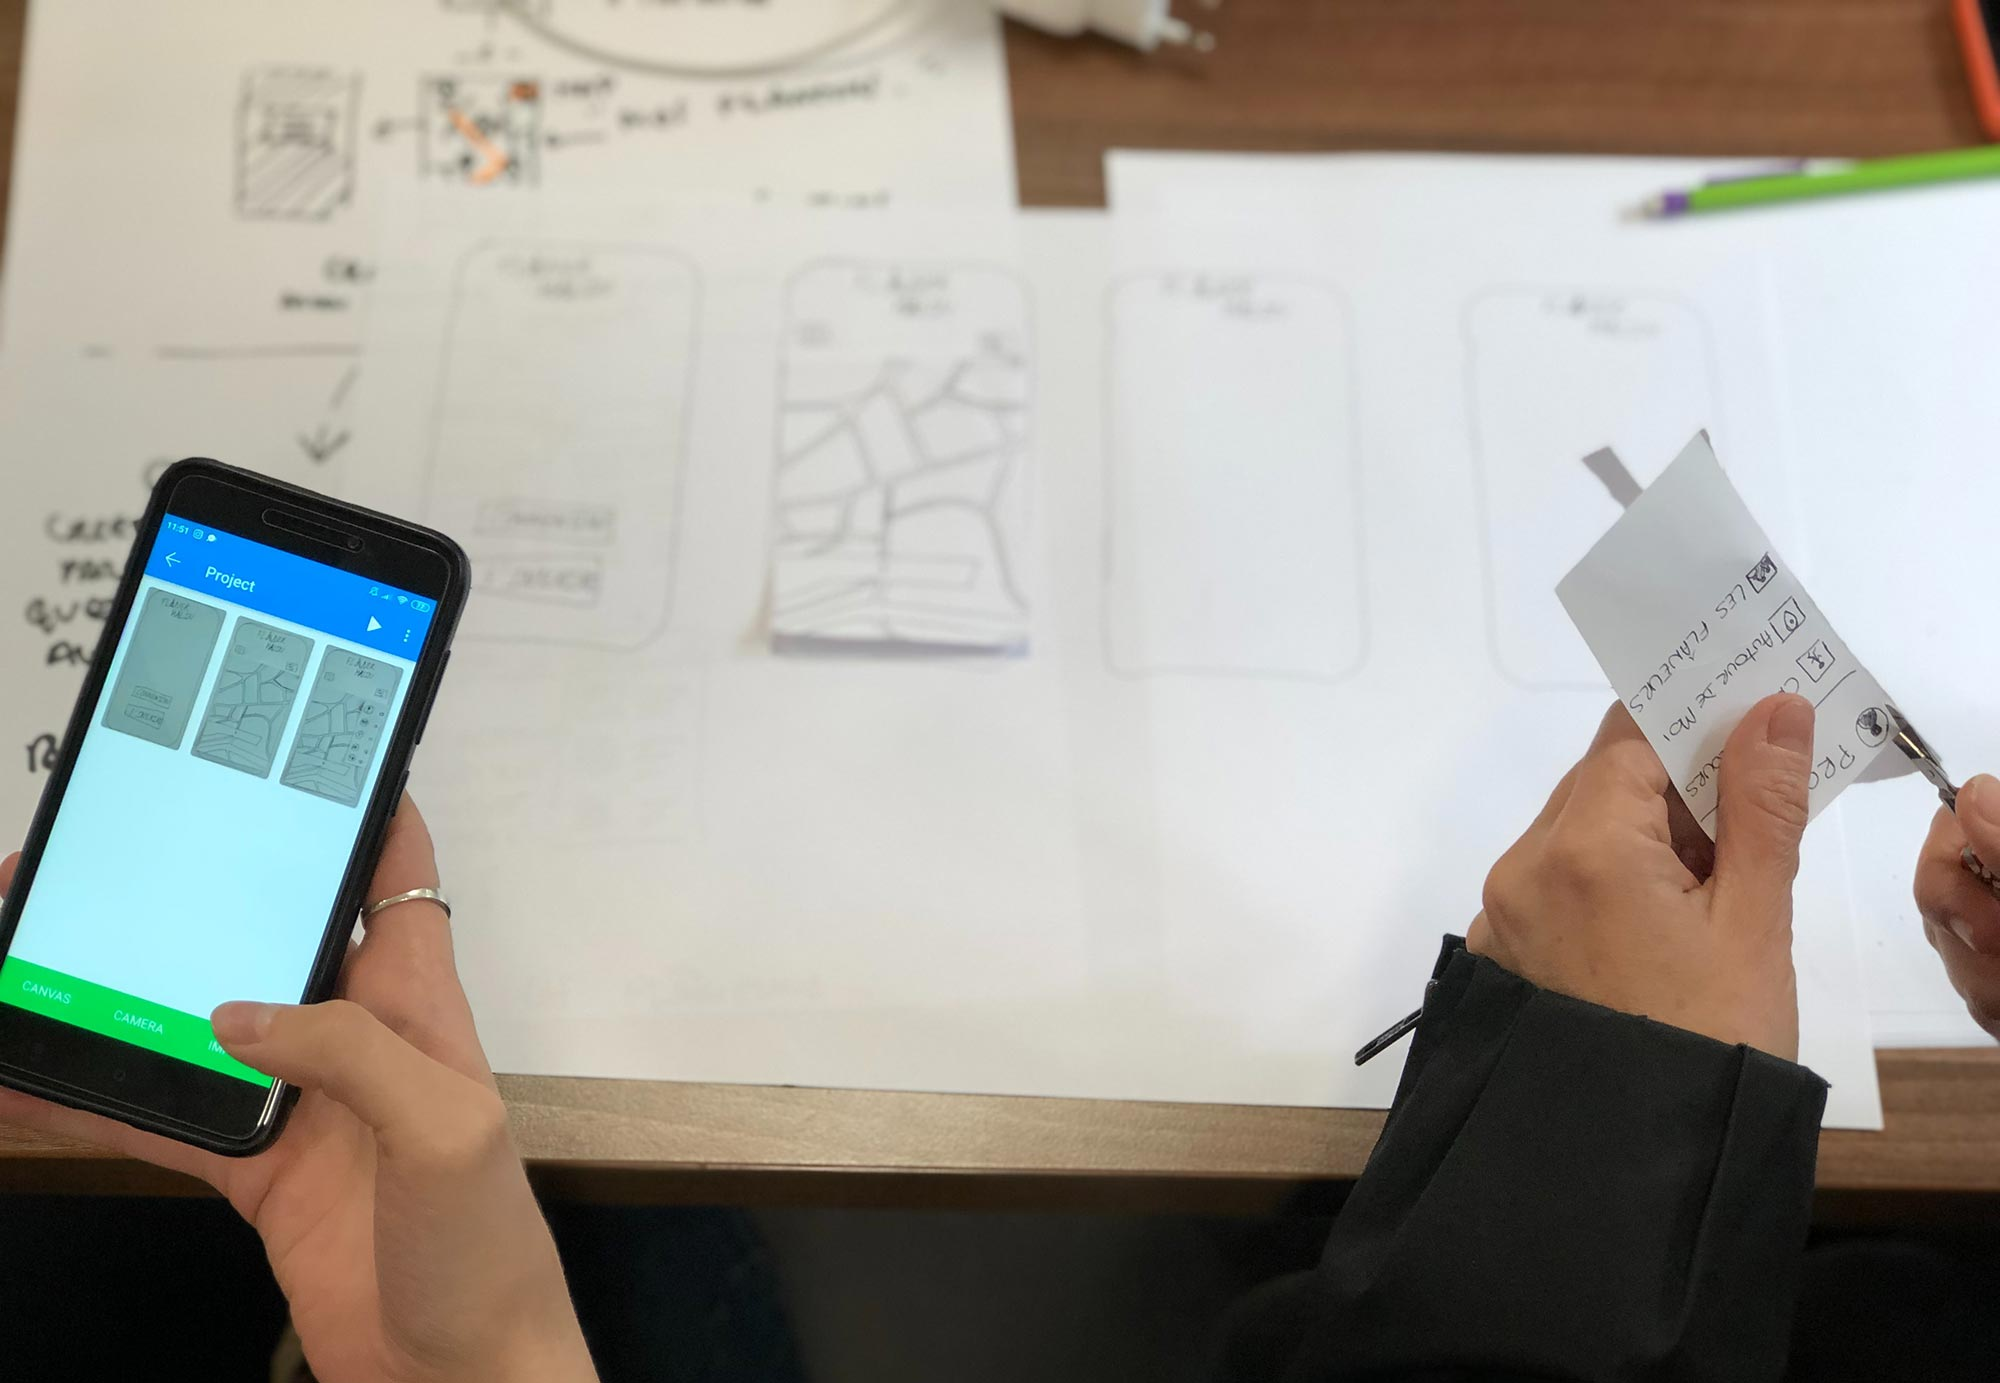 check the post:What is Rapid Prototyping? for a description of the image